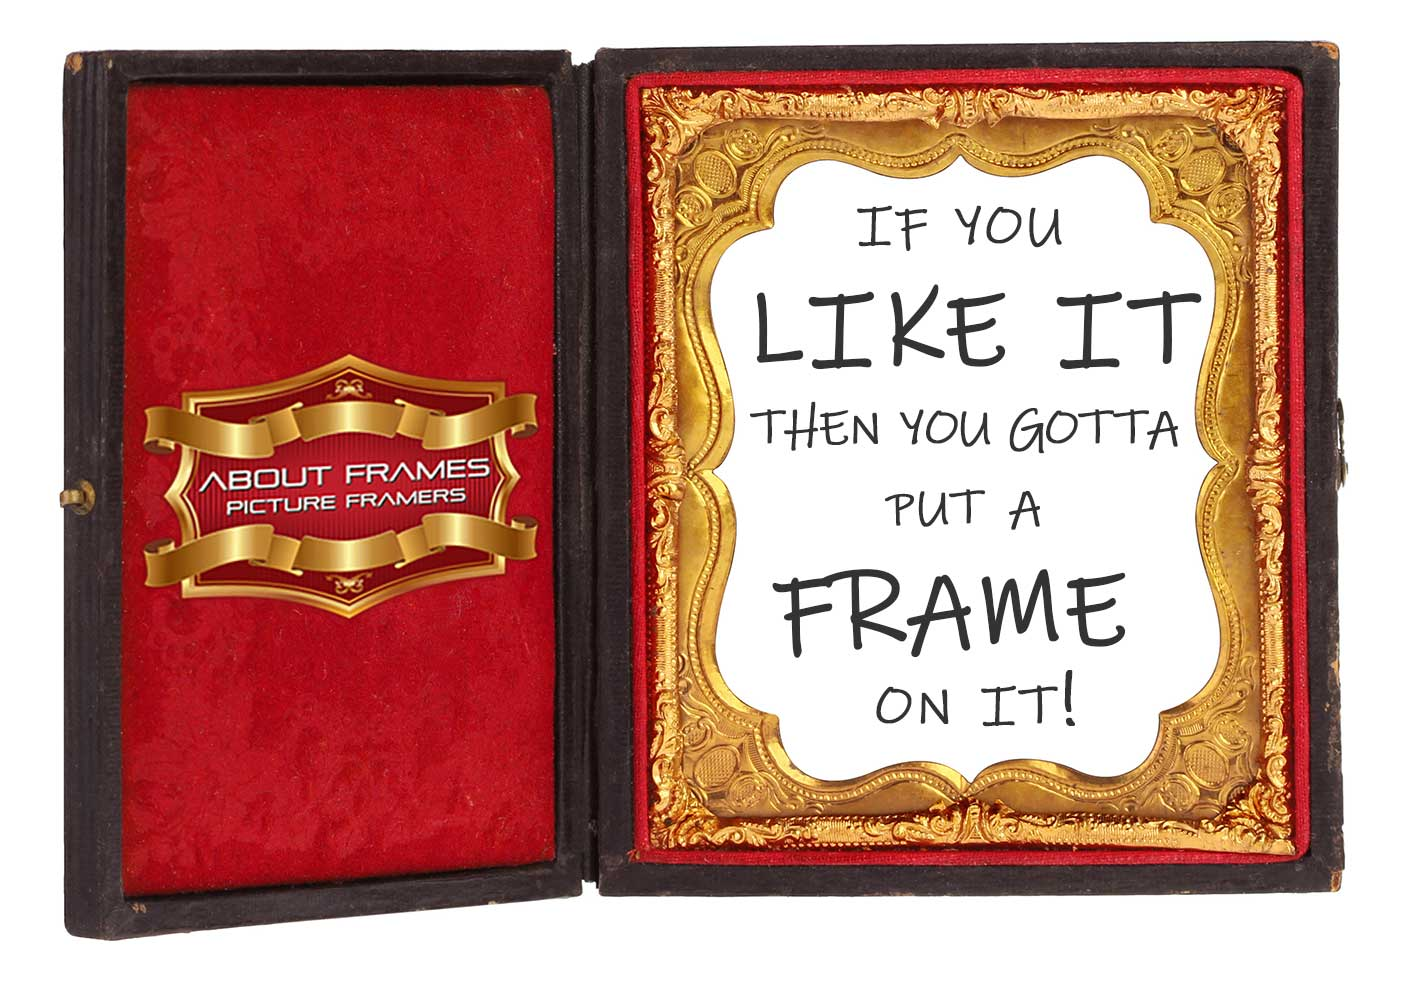 poster-framing-gold-coast-about-frames